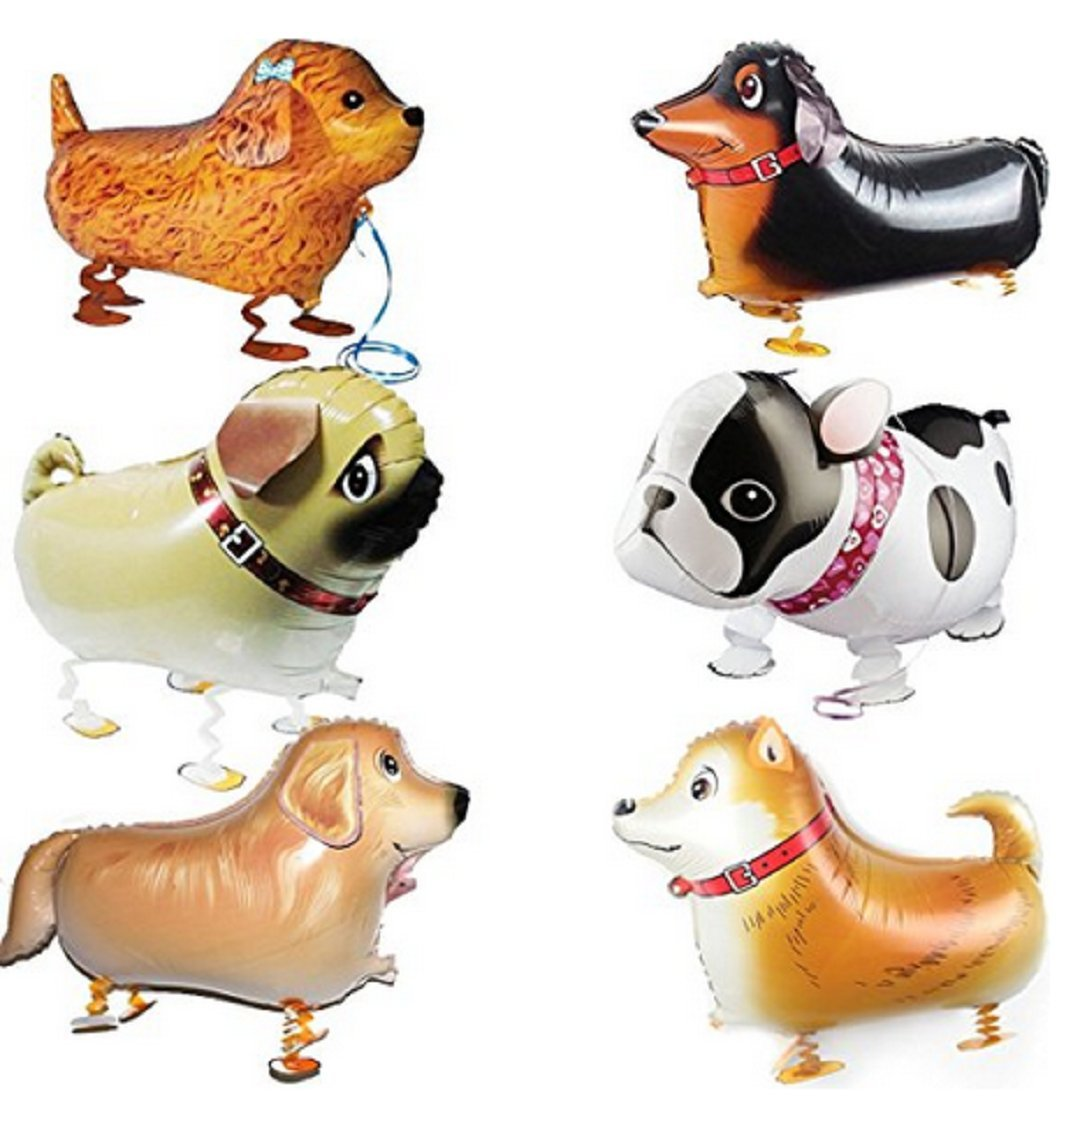 Wendingstan Walking Animal Balloons Pet Dog balloons - 6pcs Puppy Dogs Birthday Party Supplies Kids Balloons Animal Theme Birthday Party Decorations